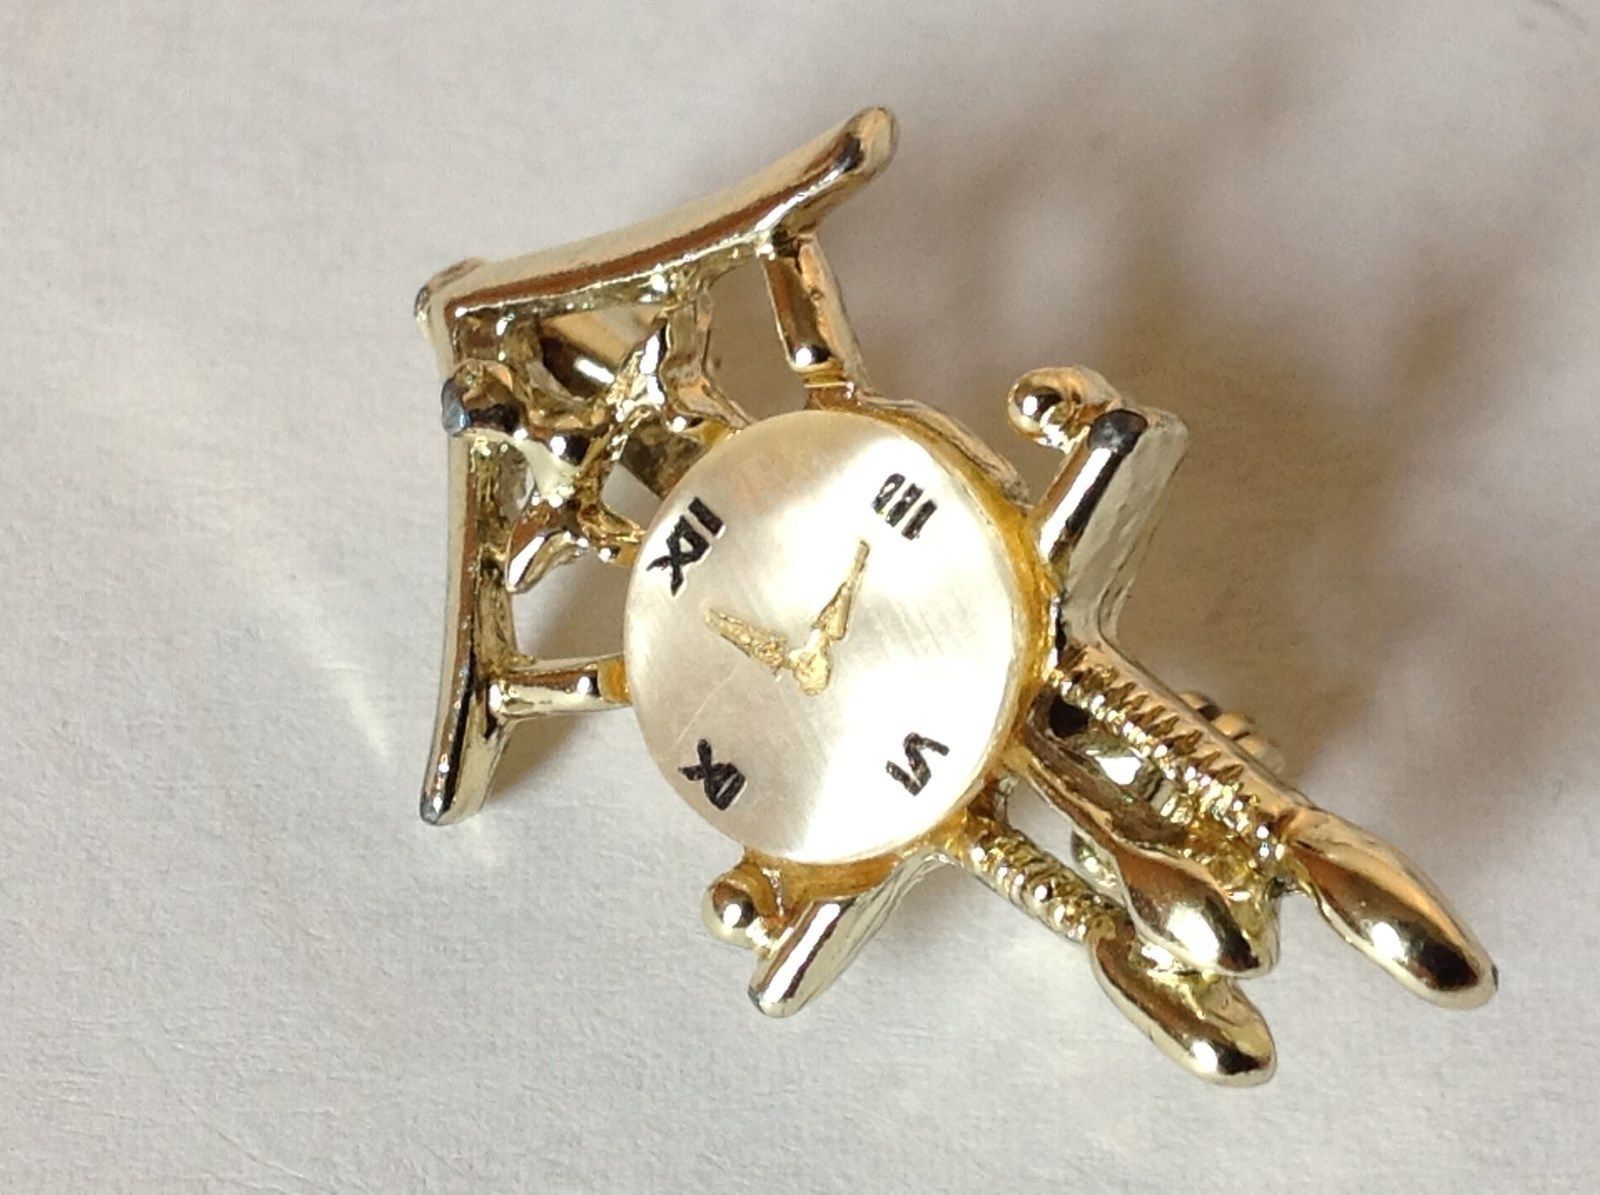 Gold Tone Wall Clock Pin with Small Round Stone for Face Hinge Clasp